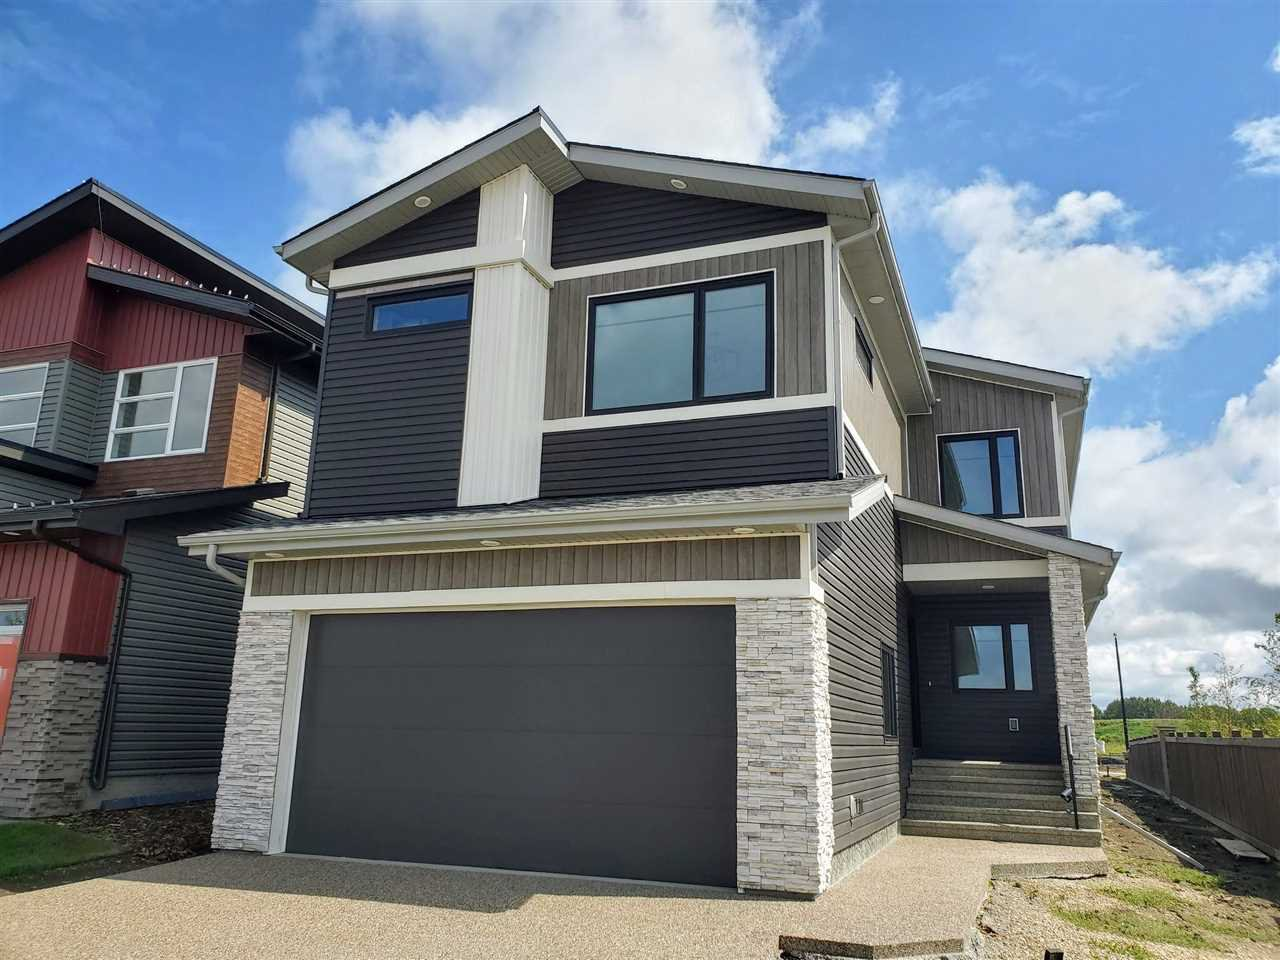 Main Photo: 2 Elwyck Gate: Spruce Grove House for sale : MLS®# E4195307